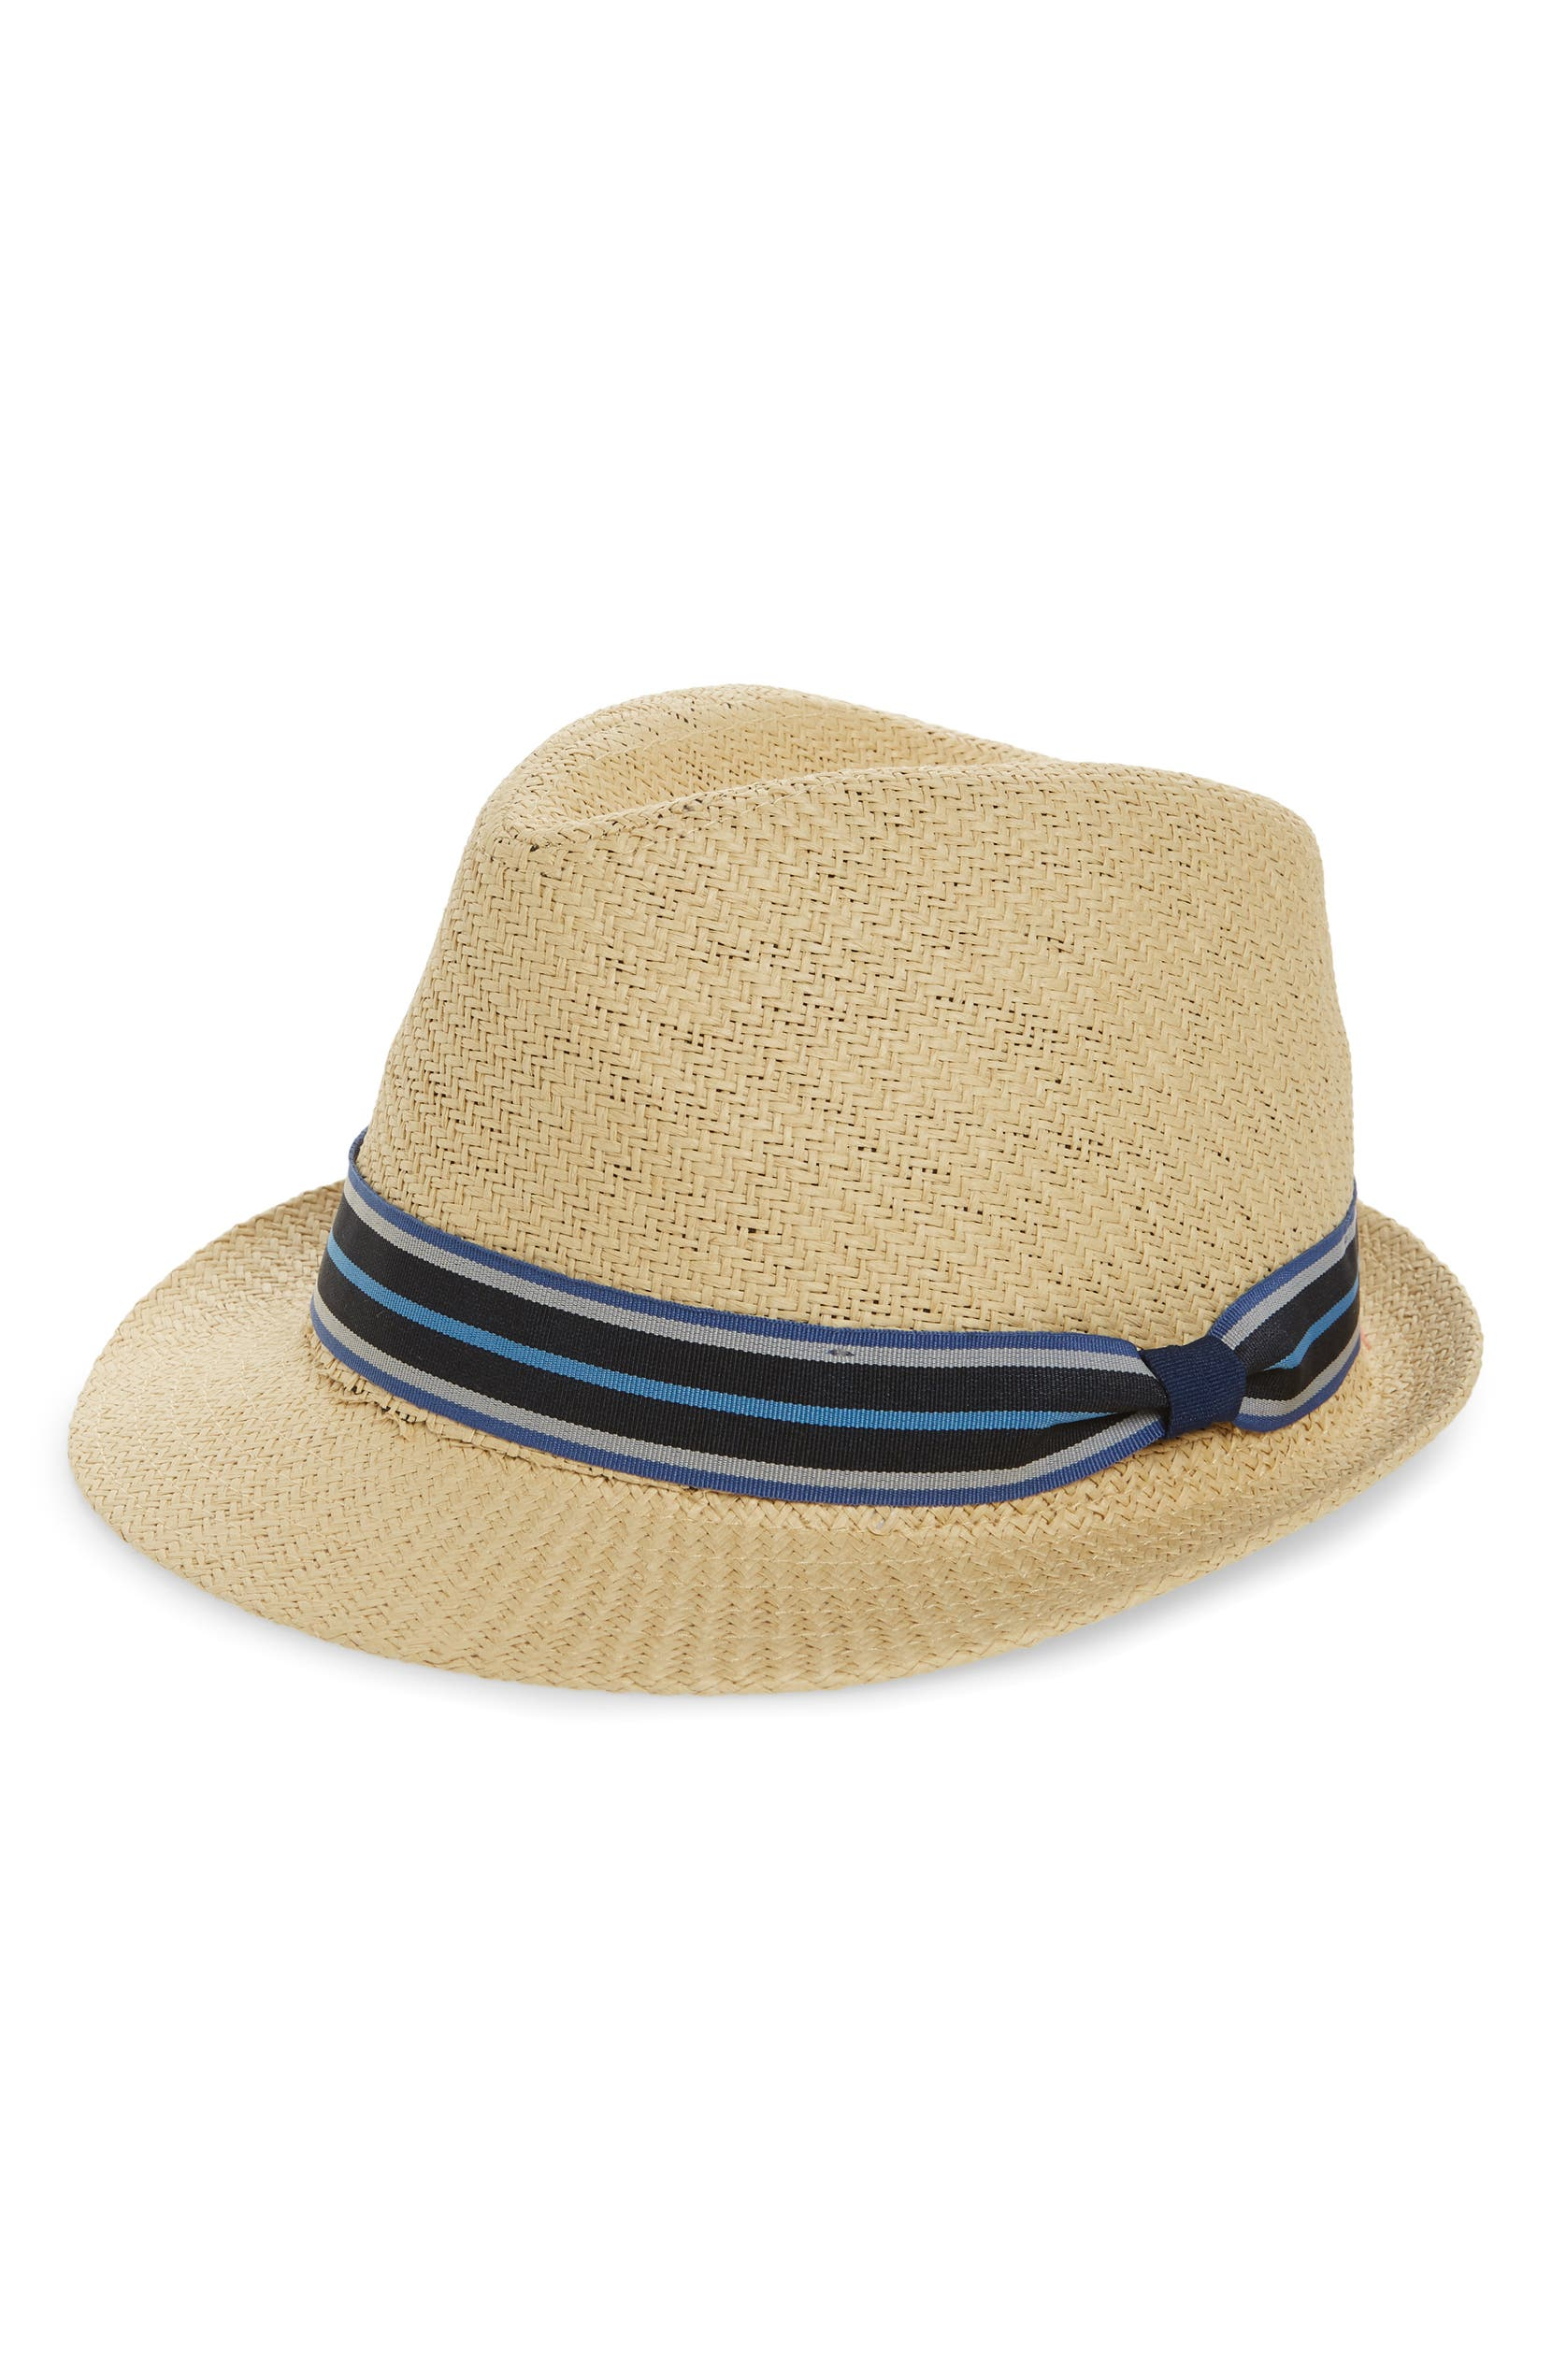 8627df6deae Goorin Brothers Killian Fedora